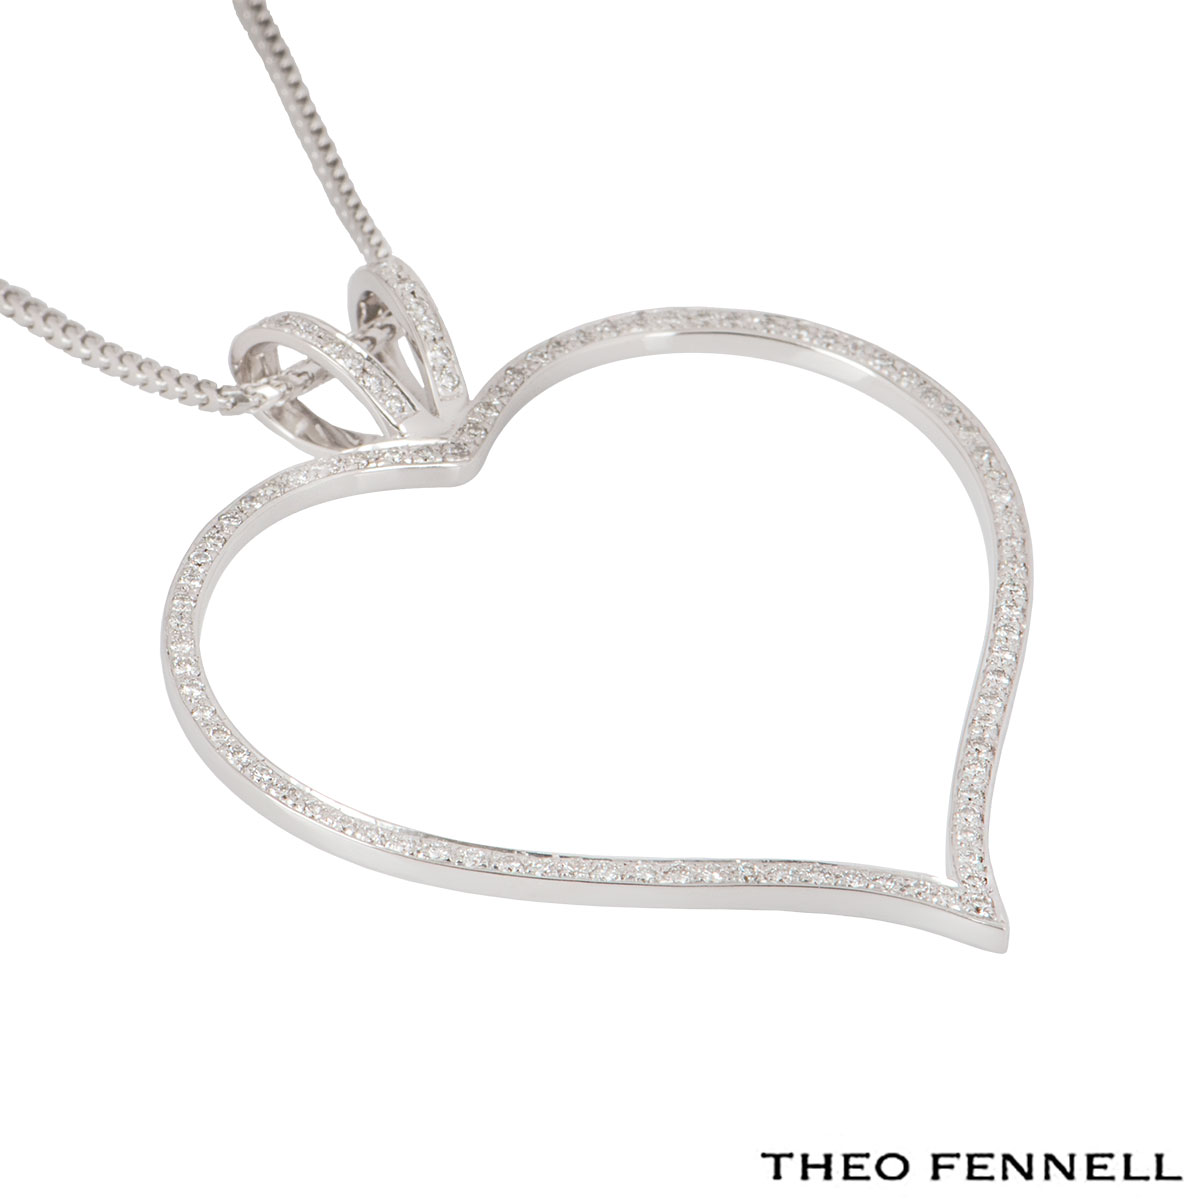 Theo Fennell White Gold Diamond Heart Necklace